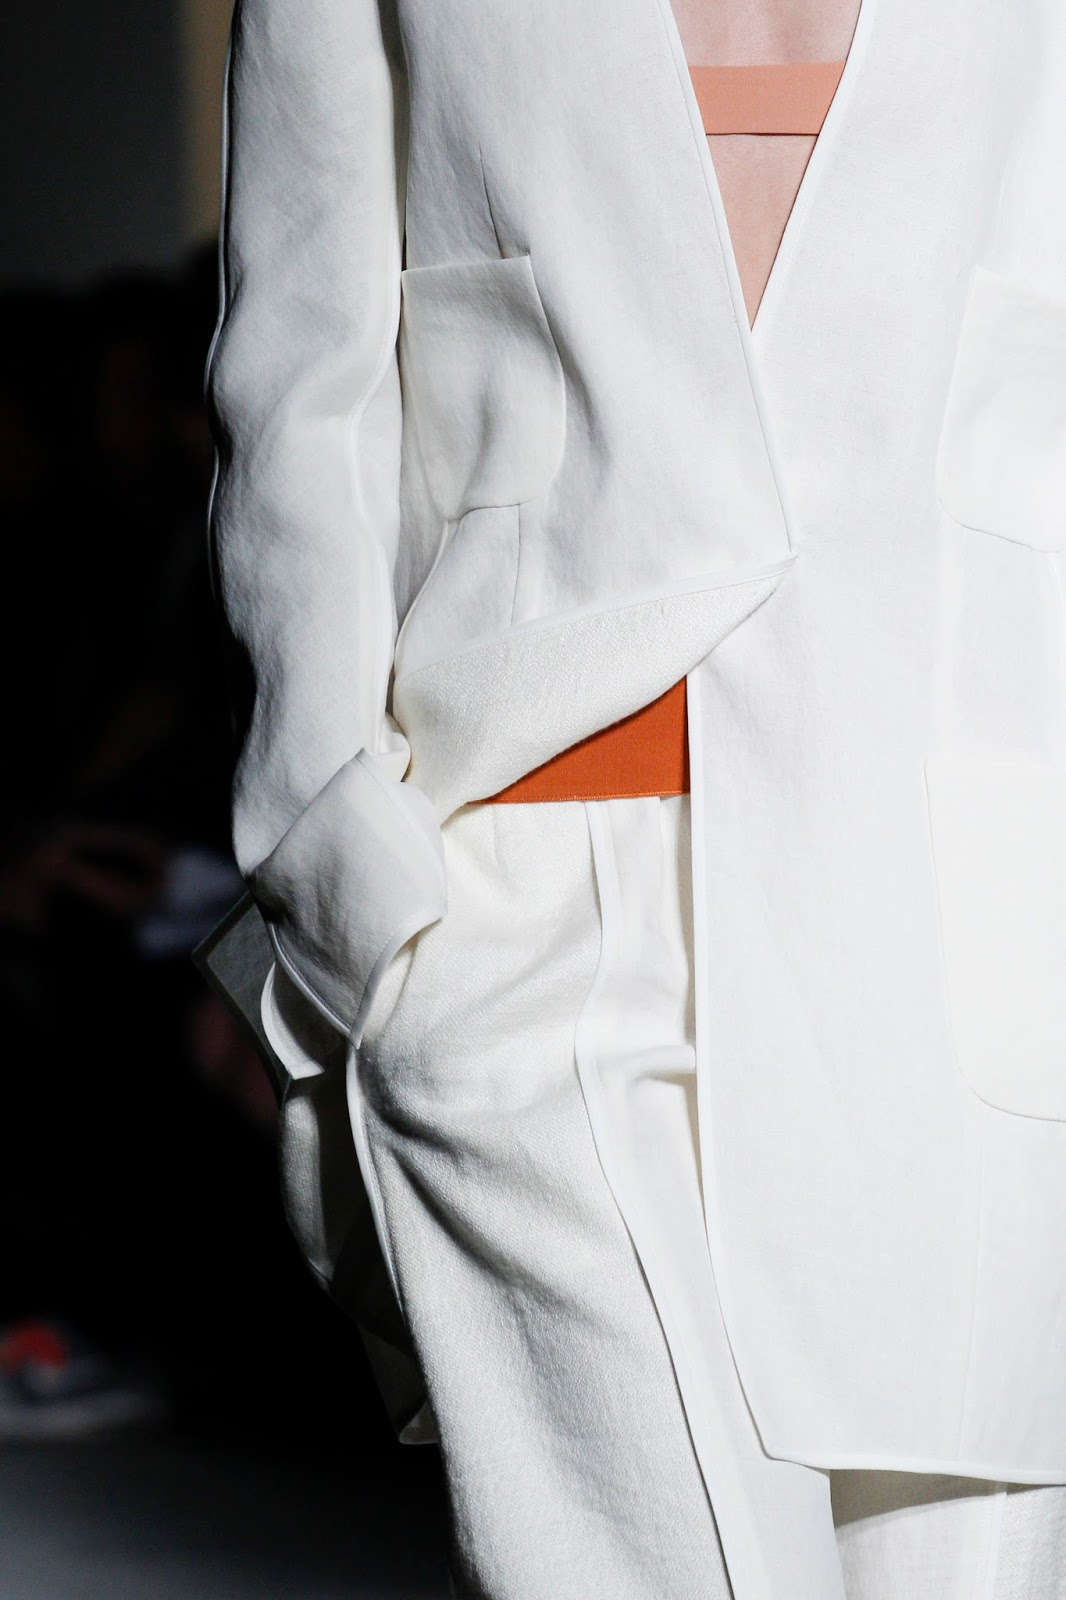 Narciso Rodriguez SS 2016 RTW collection, details and video via fashionedbylove.co.uk british fashion blog